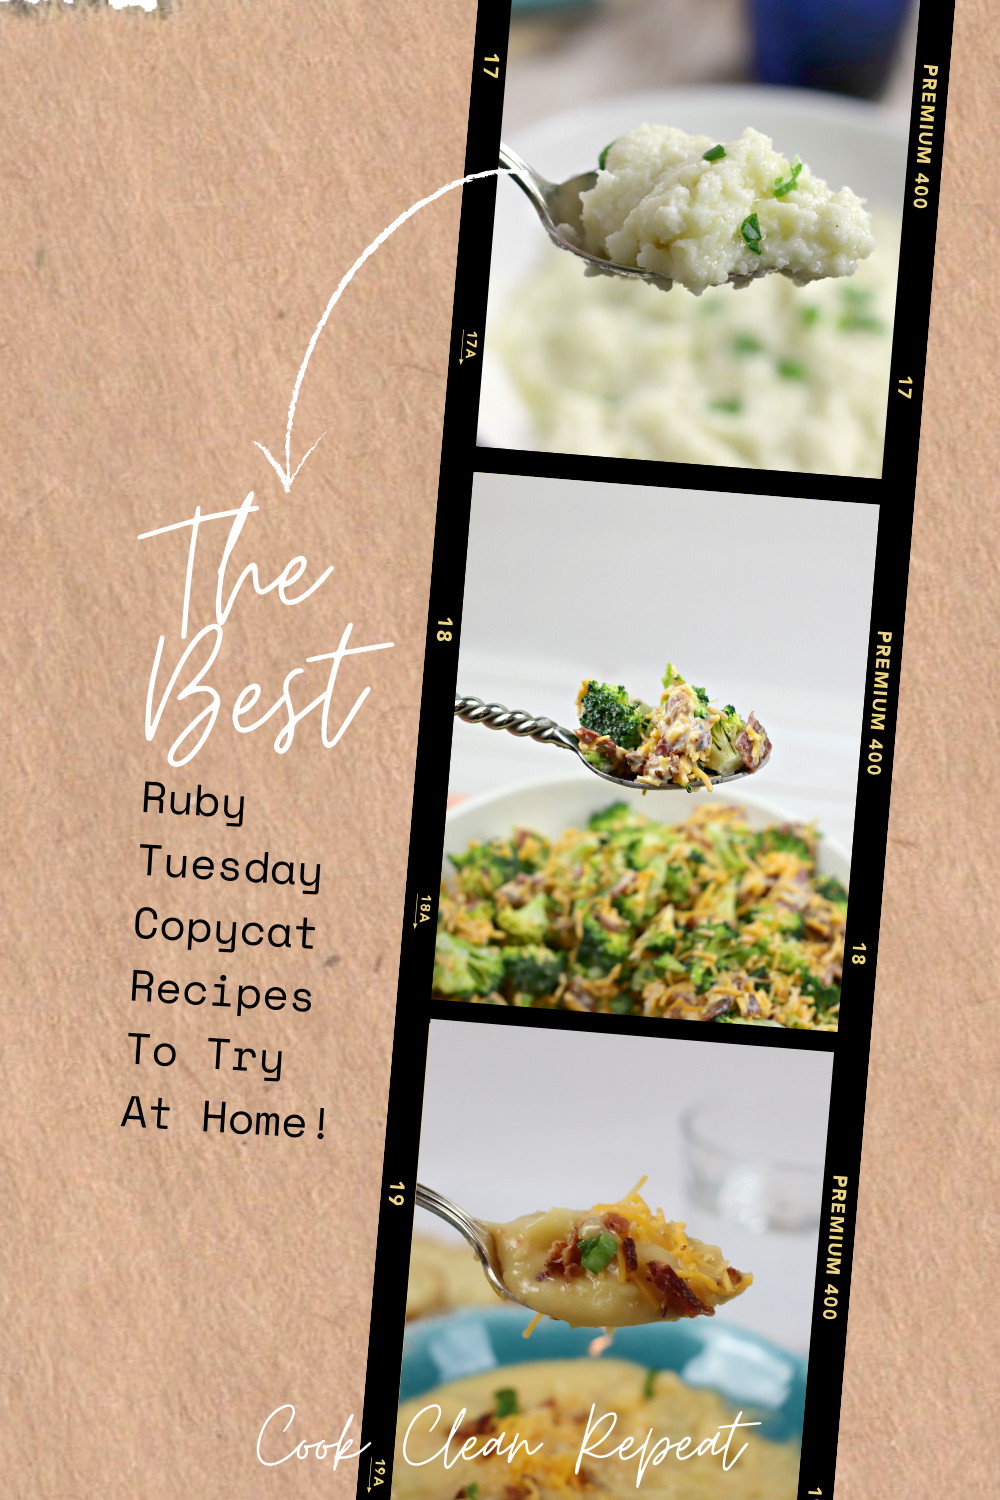 Pin showing the ruby Tuesday copycat recipes ready to be enjoyed.